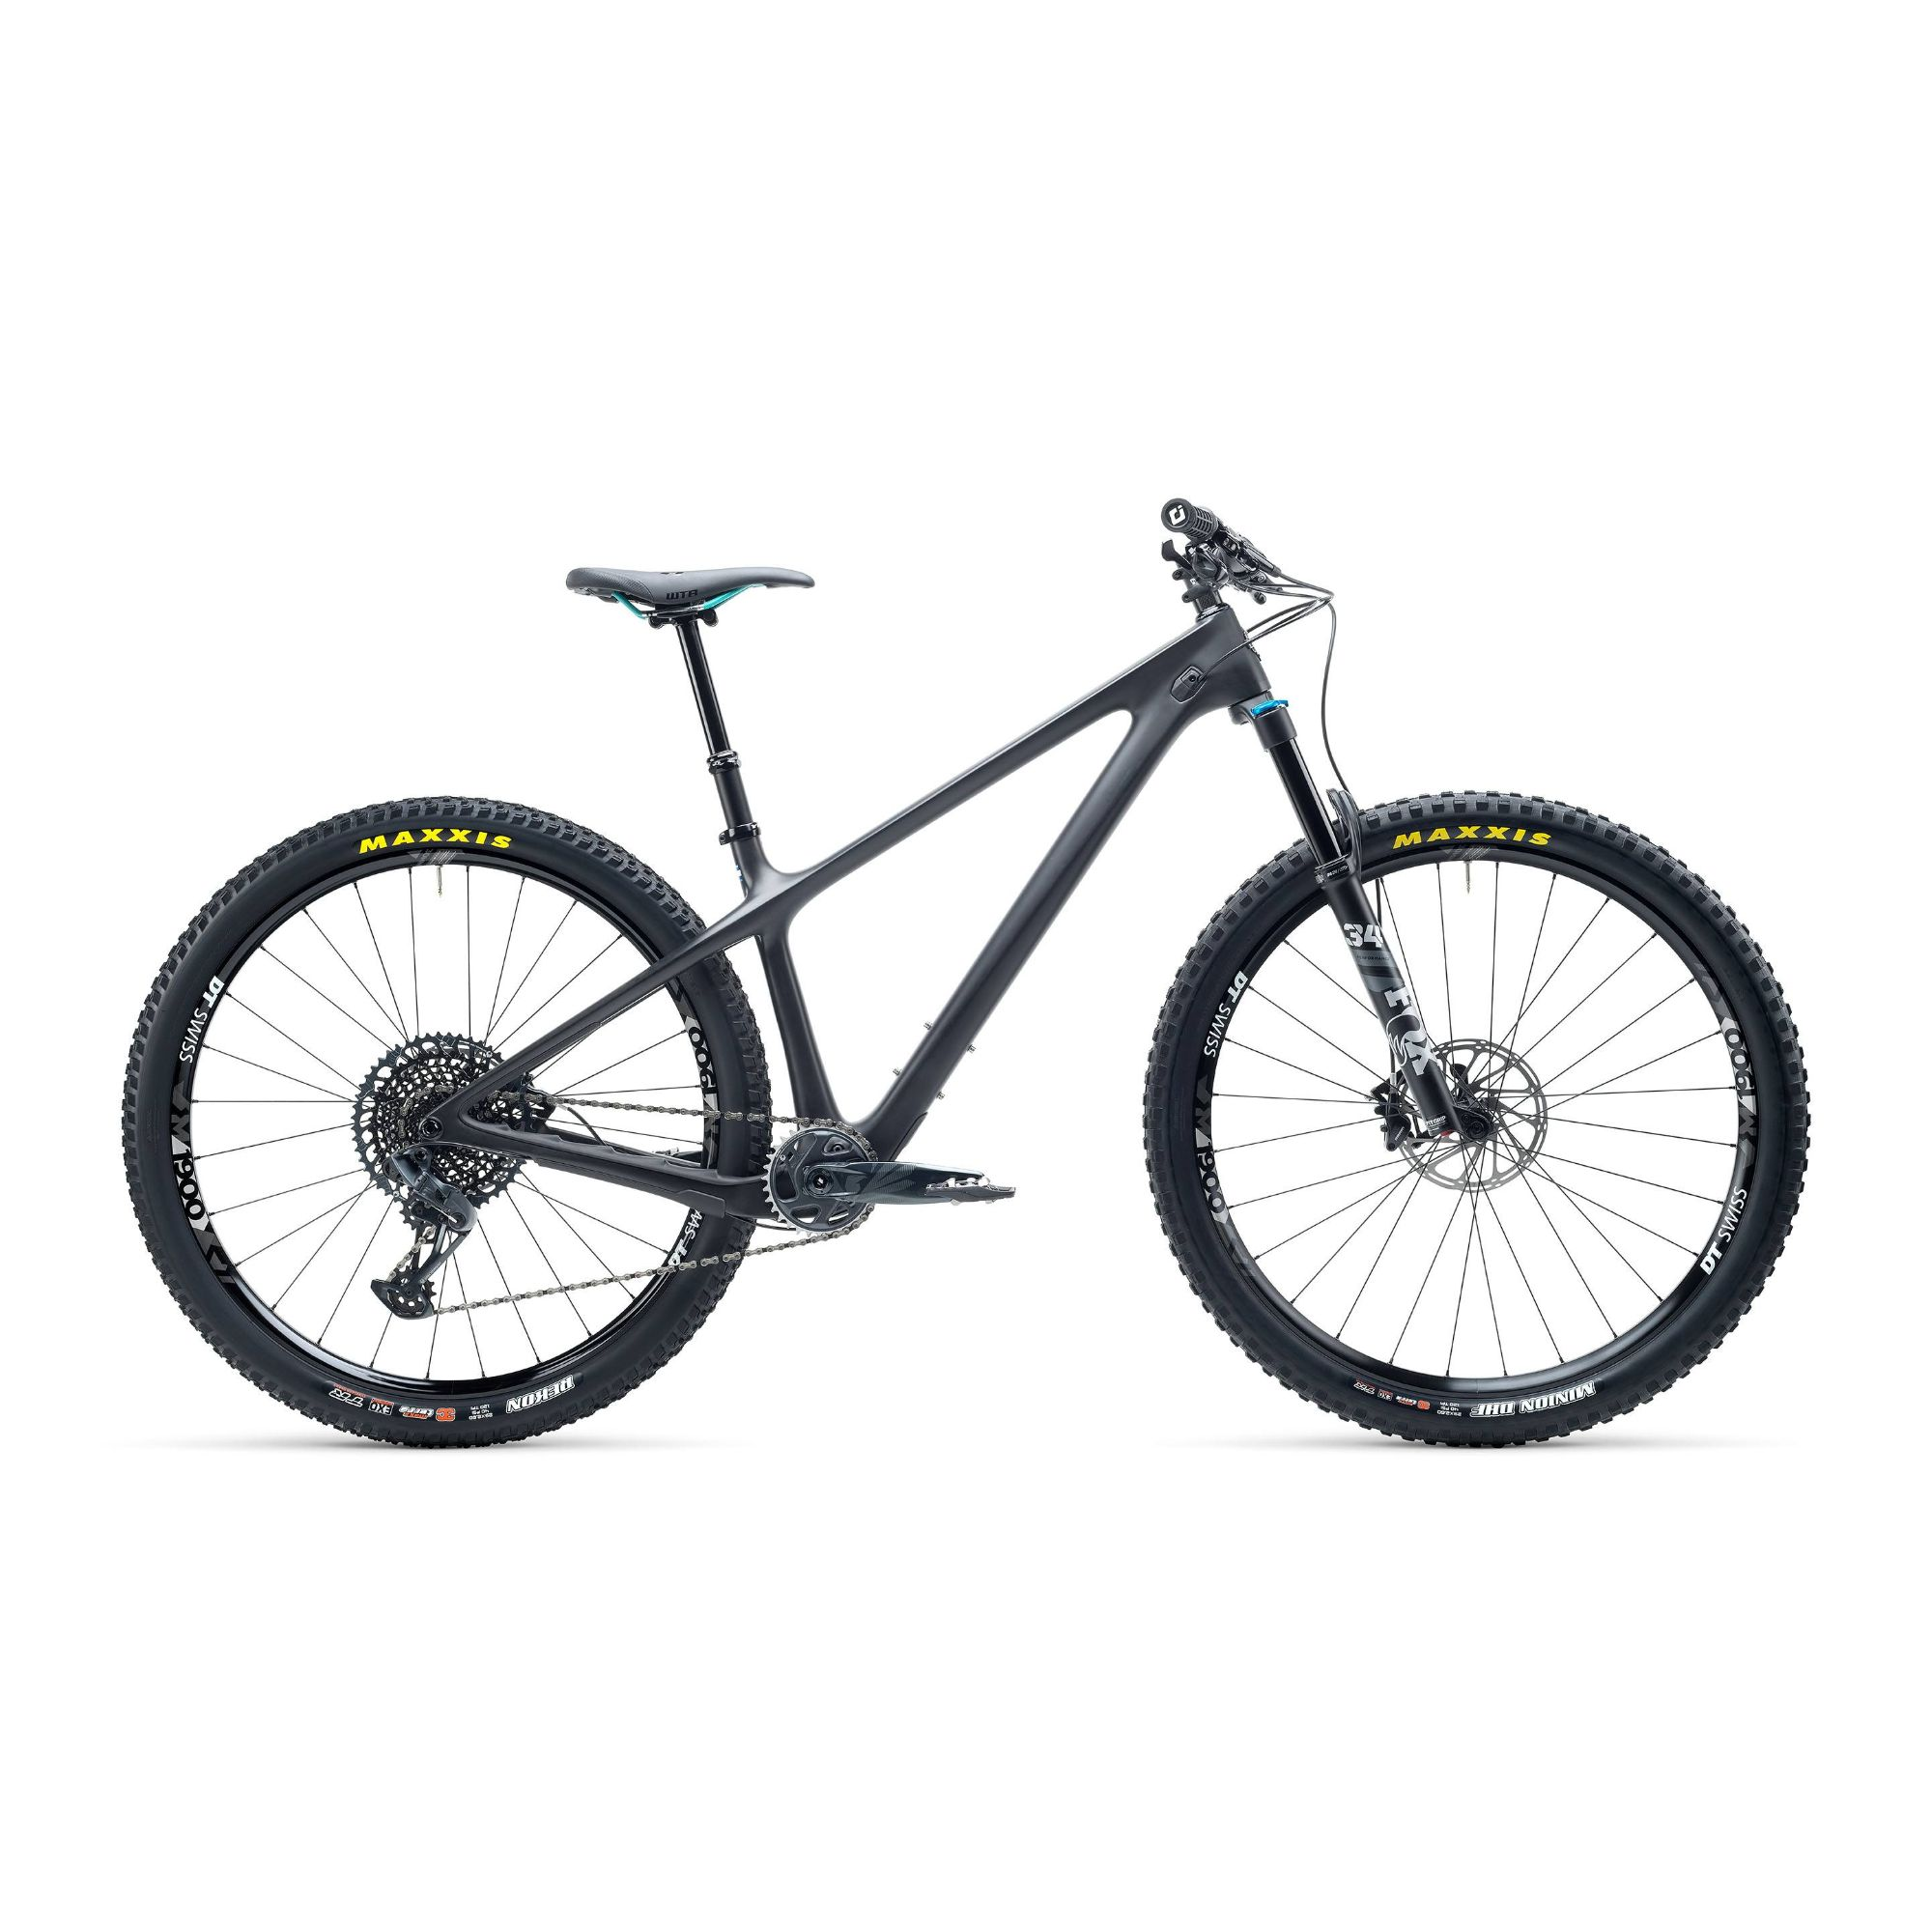 Yeti ARC C-Series C2 29er GX Eagle Carbon Mountain Bike 2021 RAW/Grey